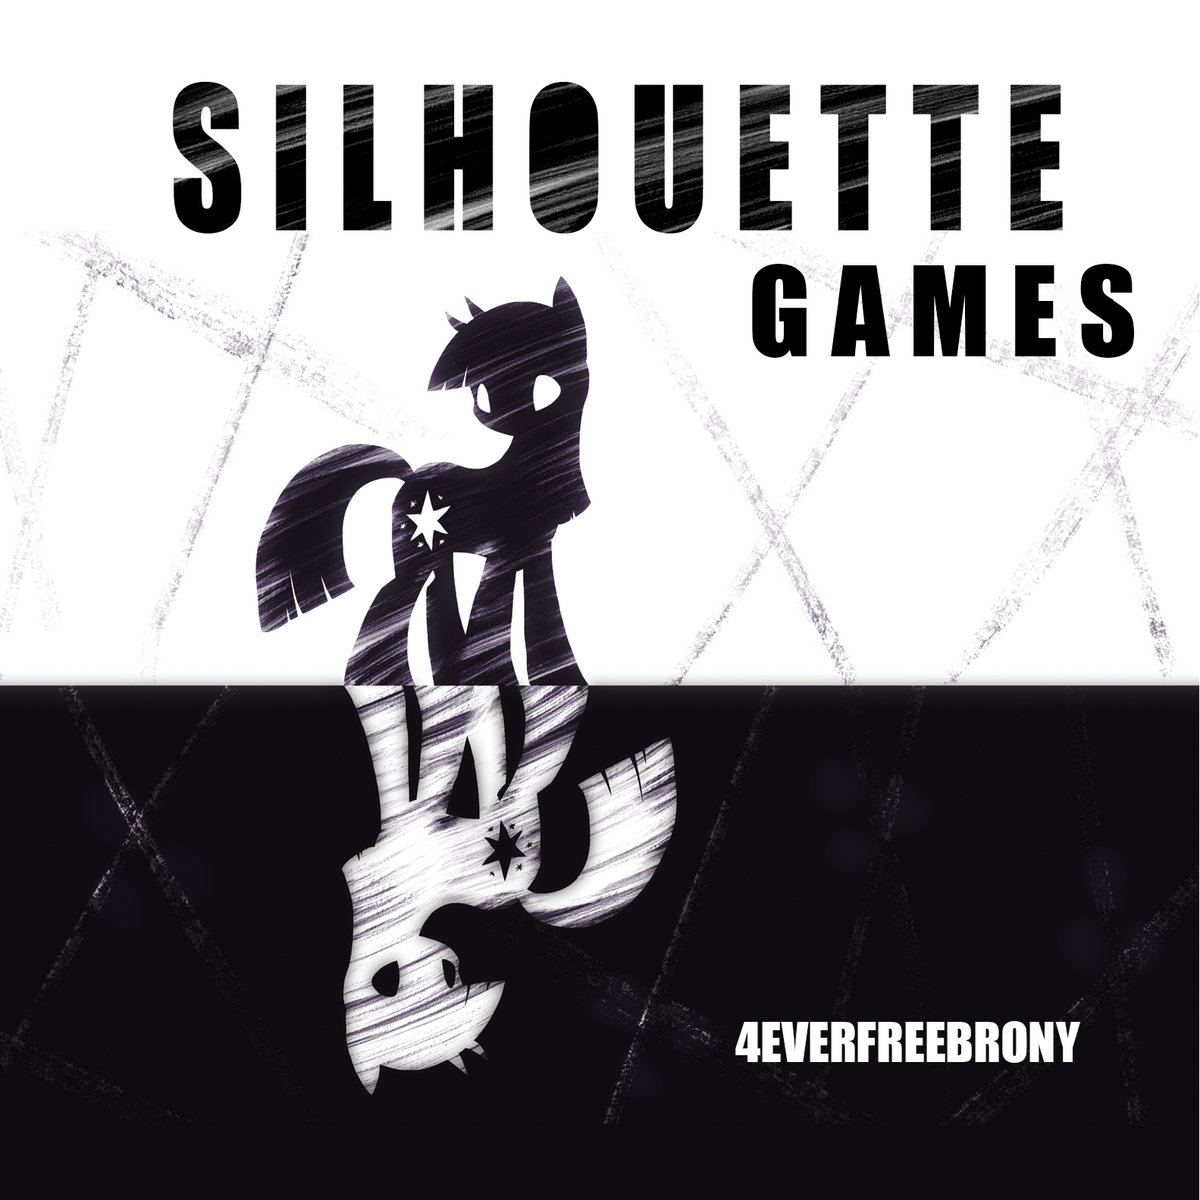 Silhouette Games | 4EverfreeBrony